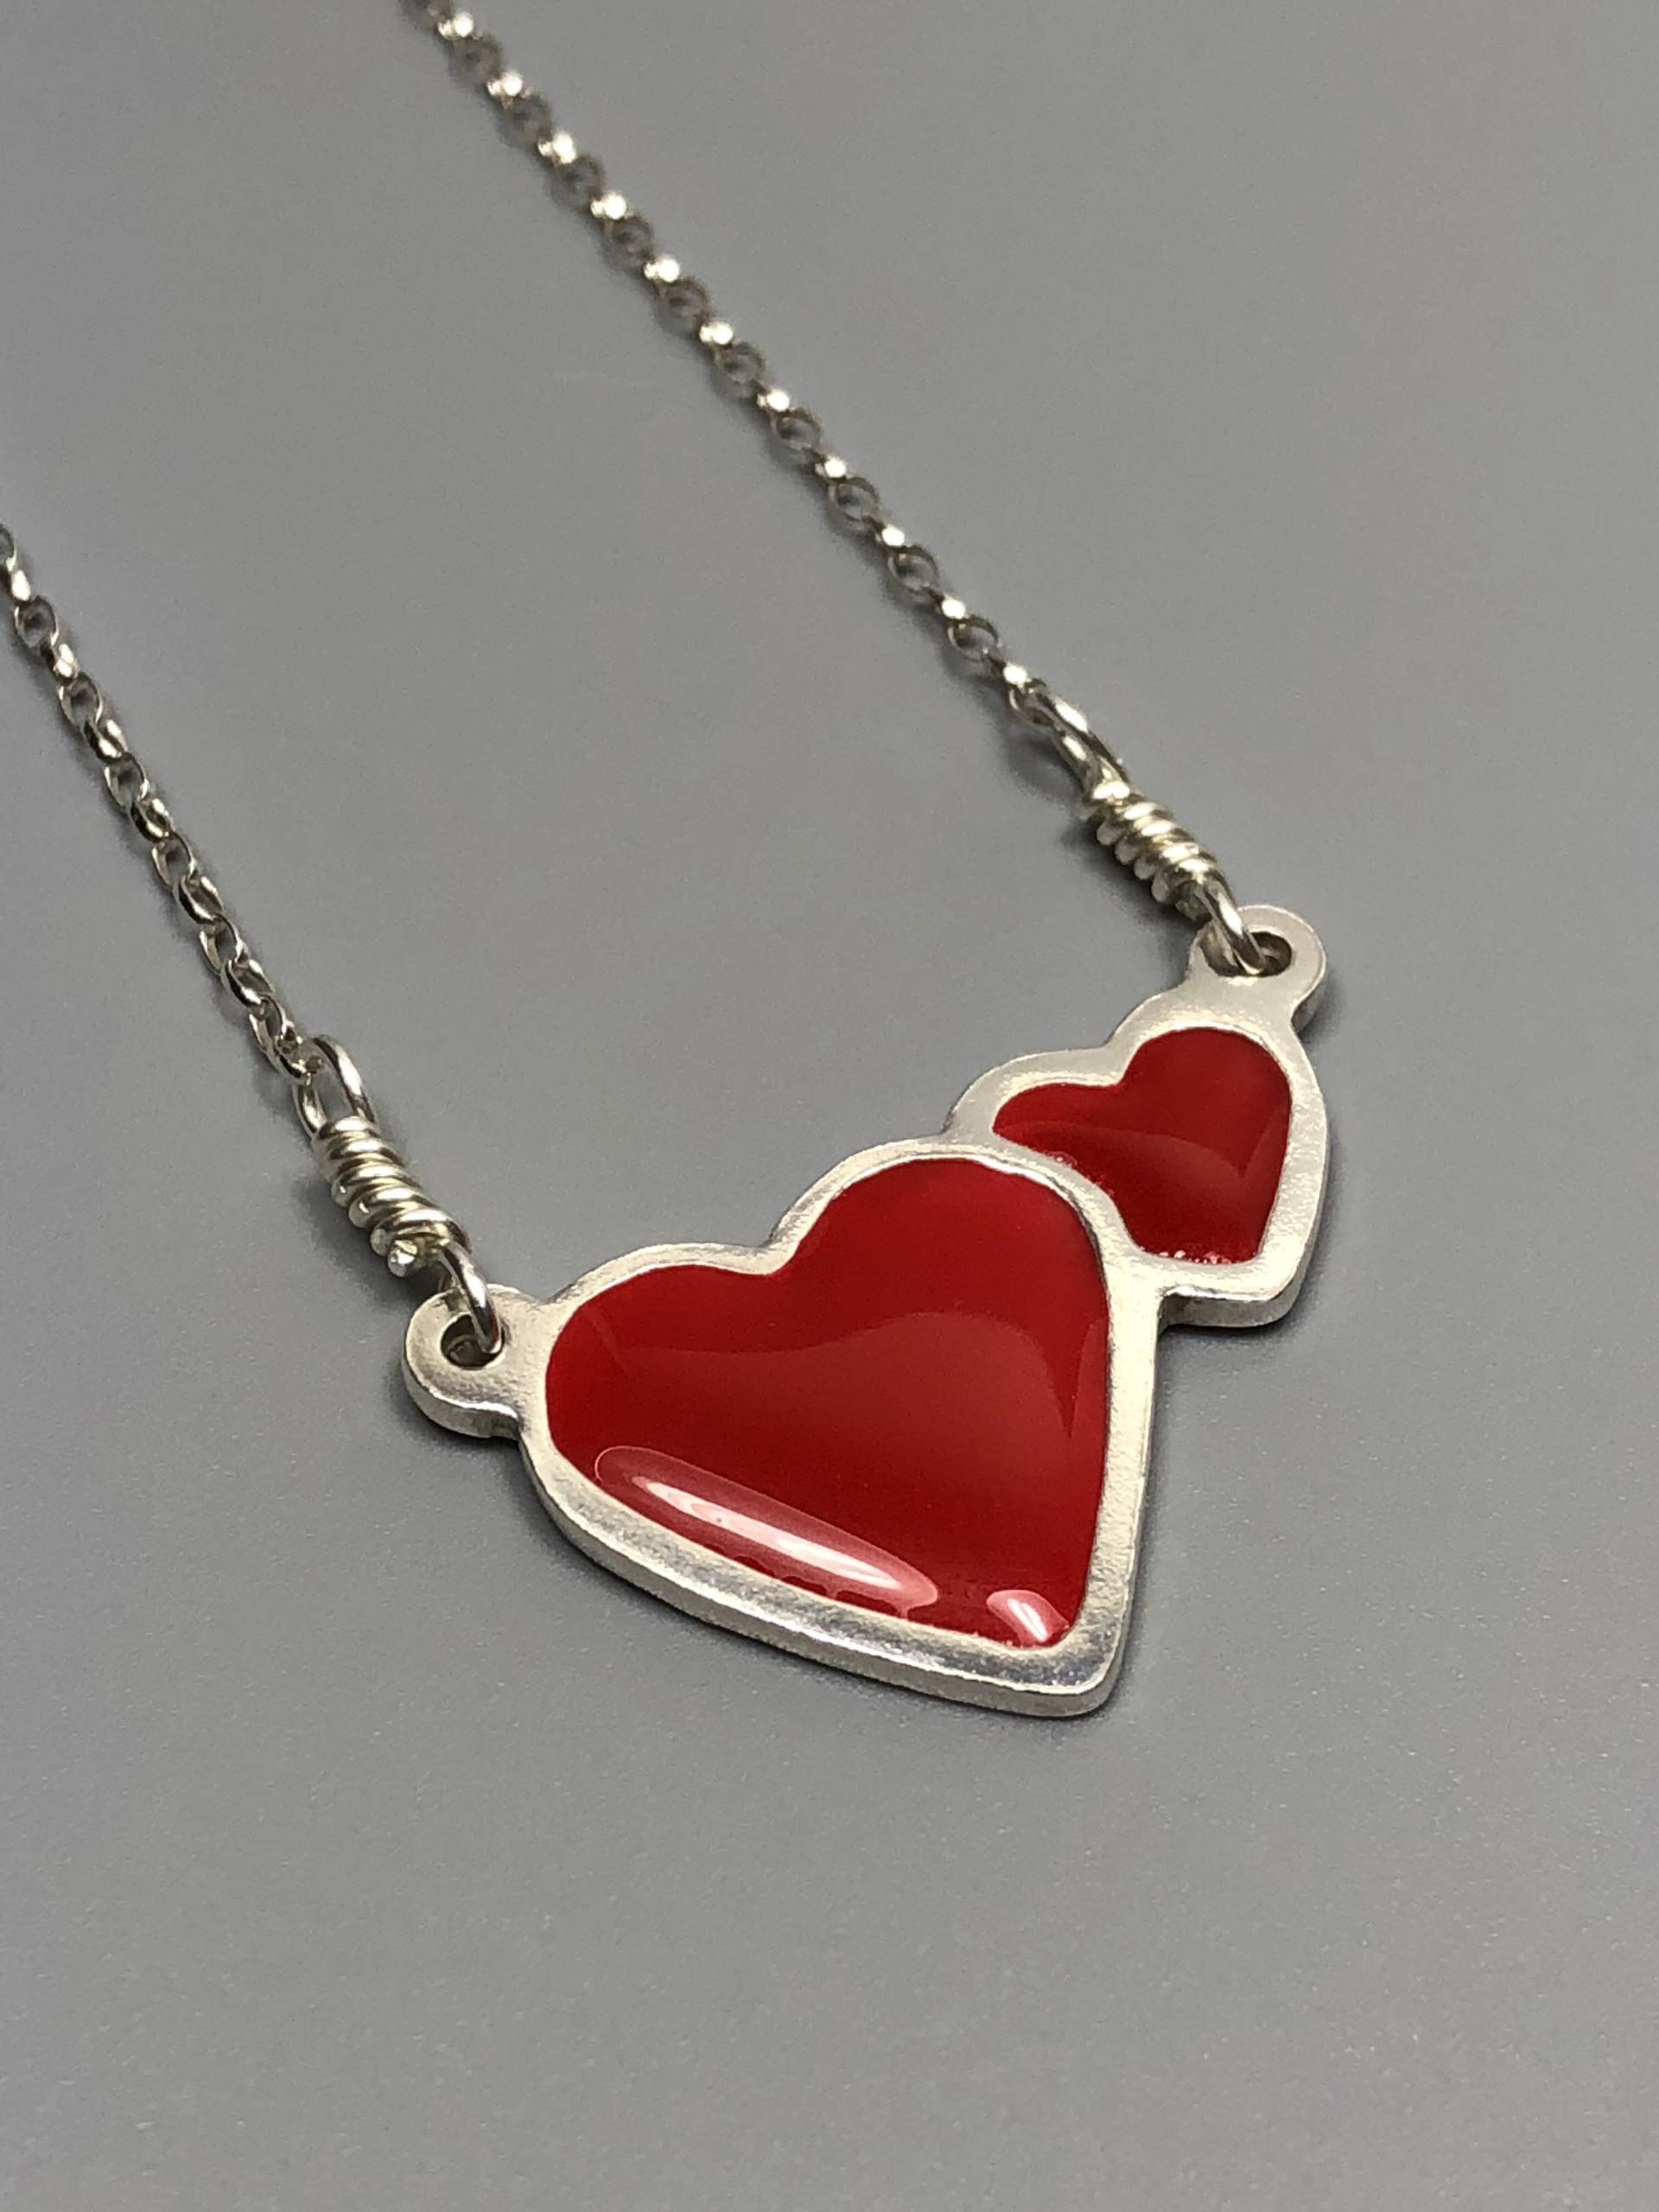 pendant products red realreal lalique jewelry enlarged heart the necklace necklaces